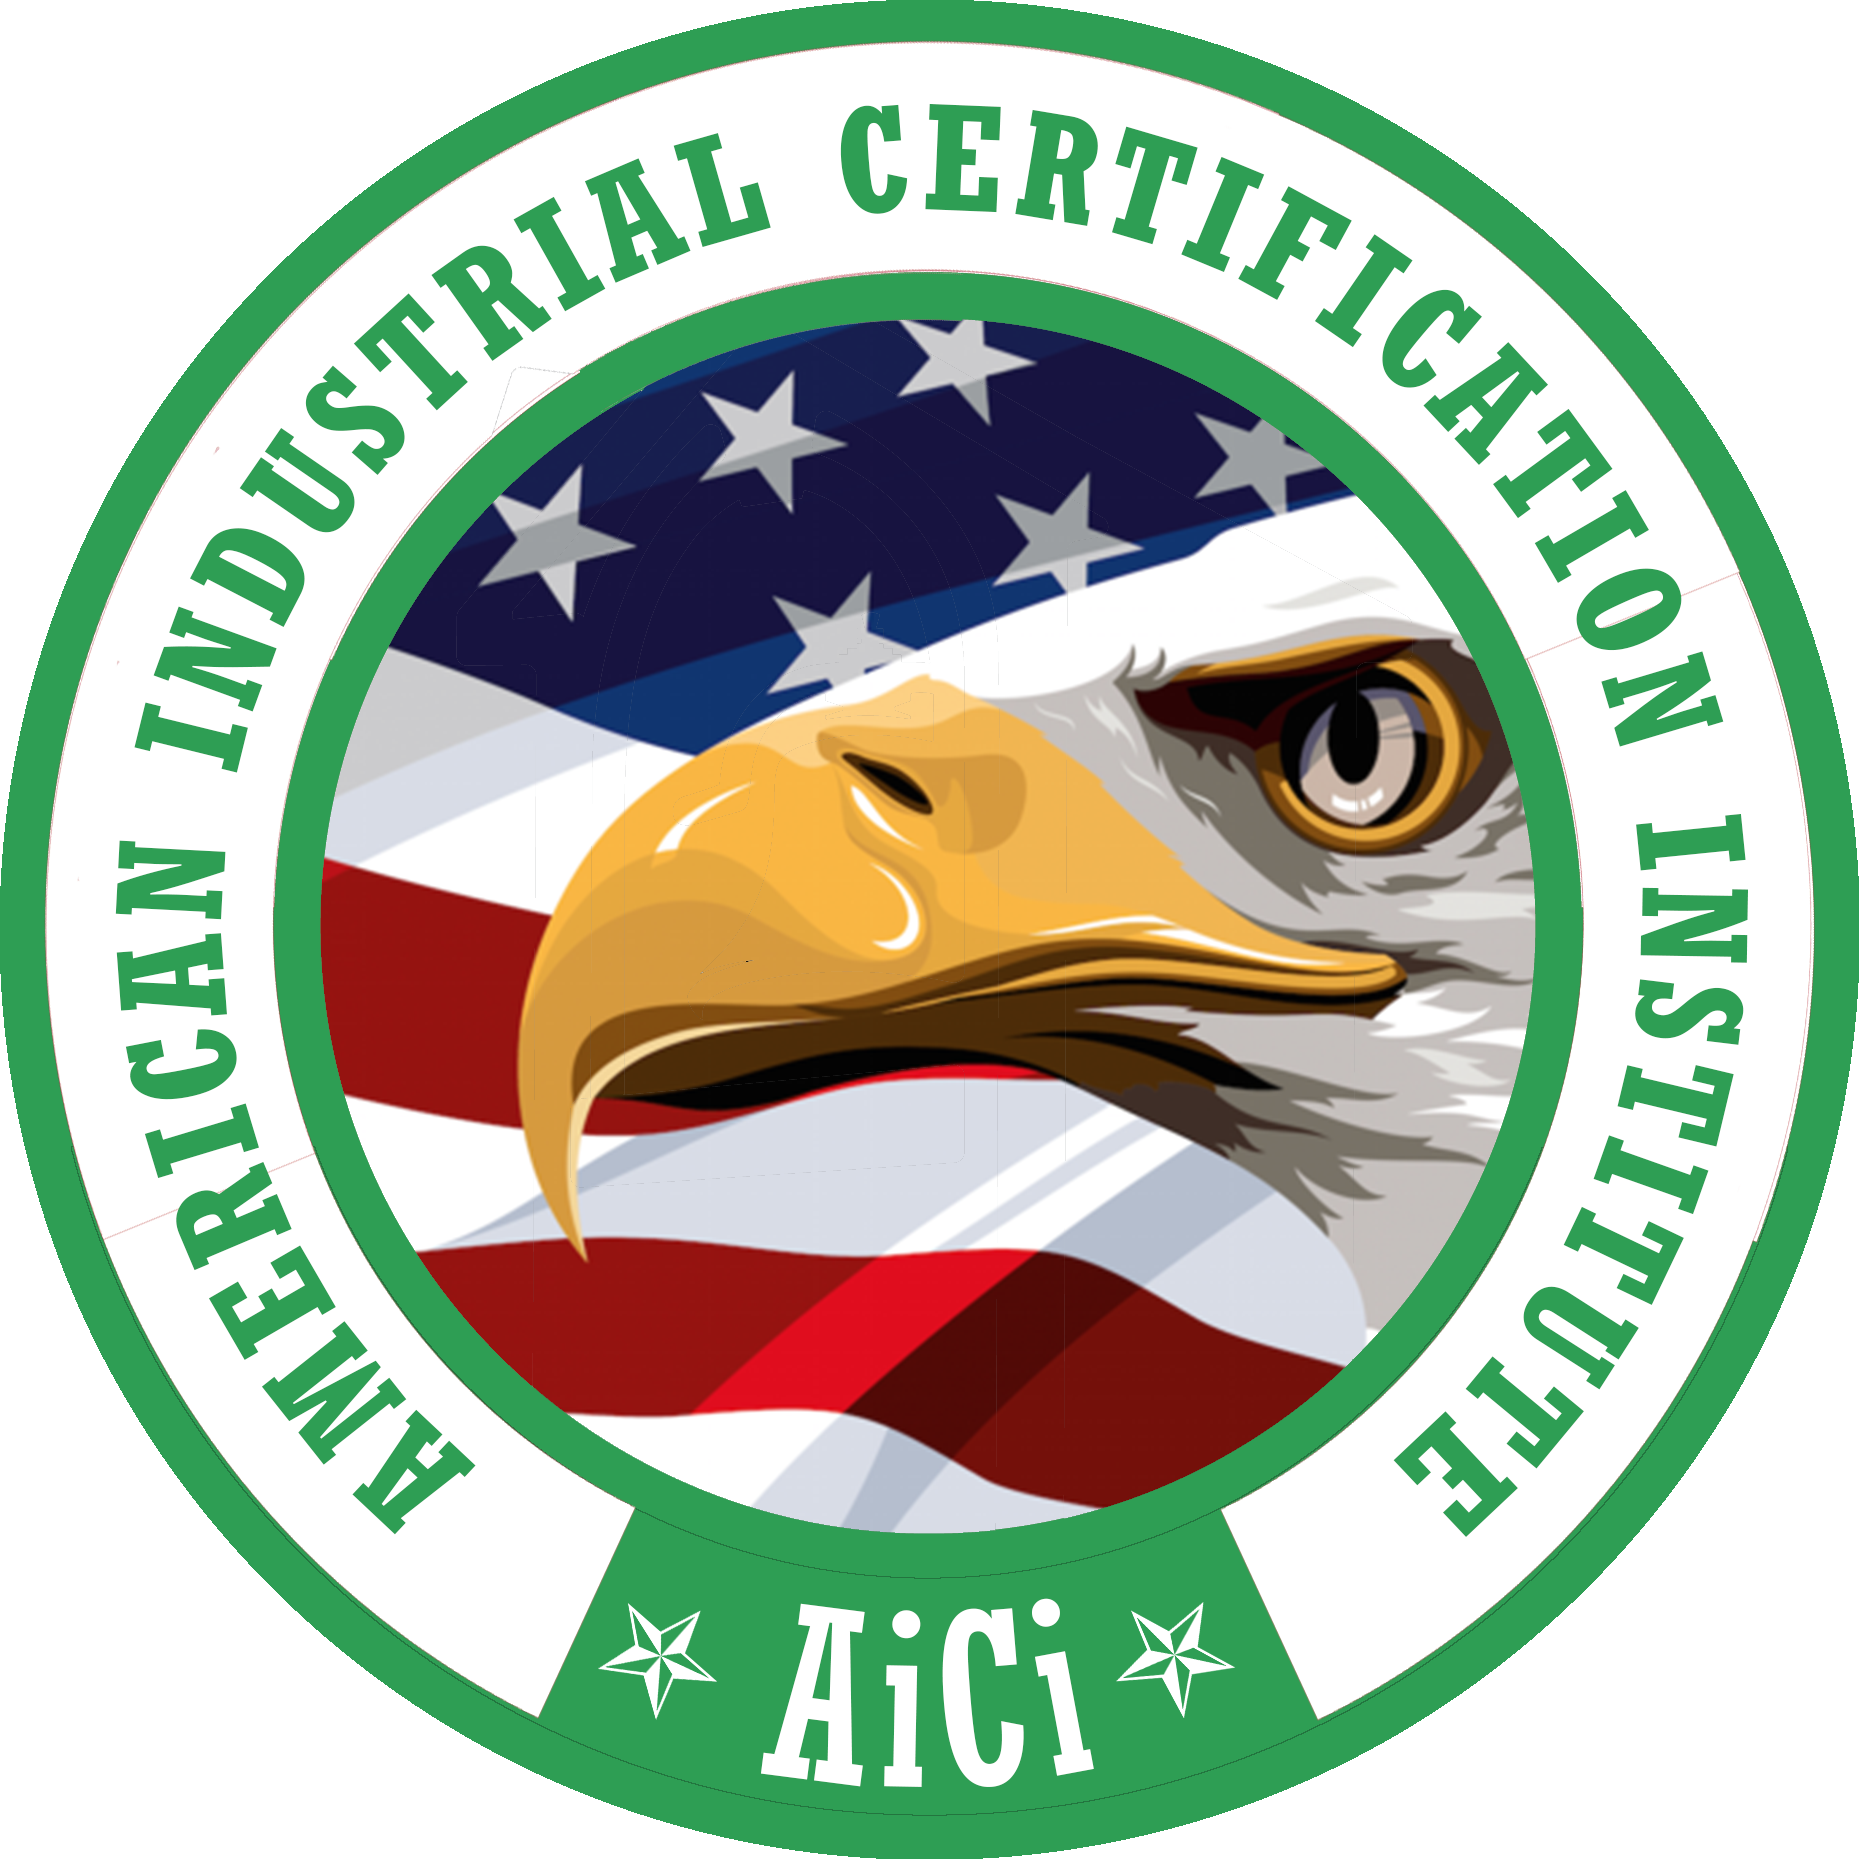 American Industrial Certification Institute – AiCi